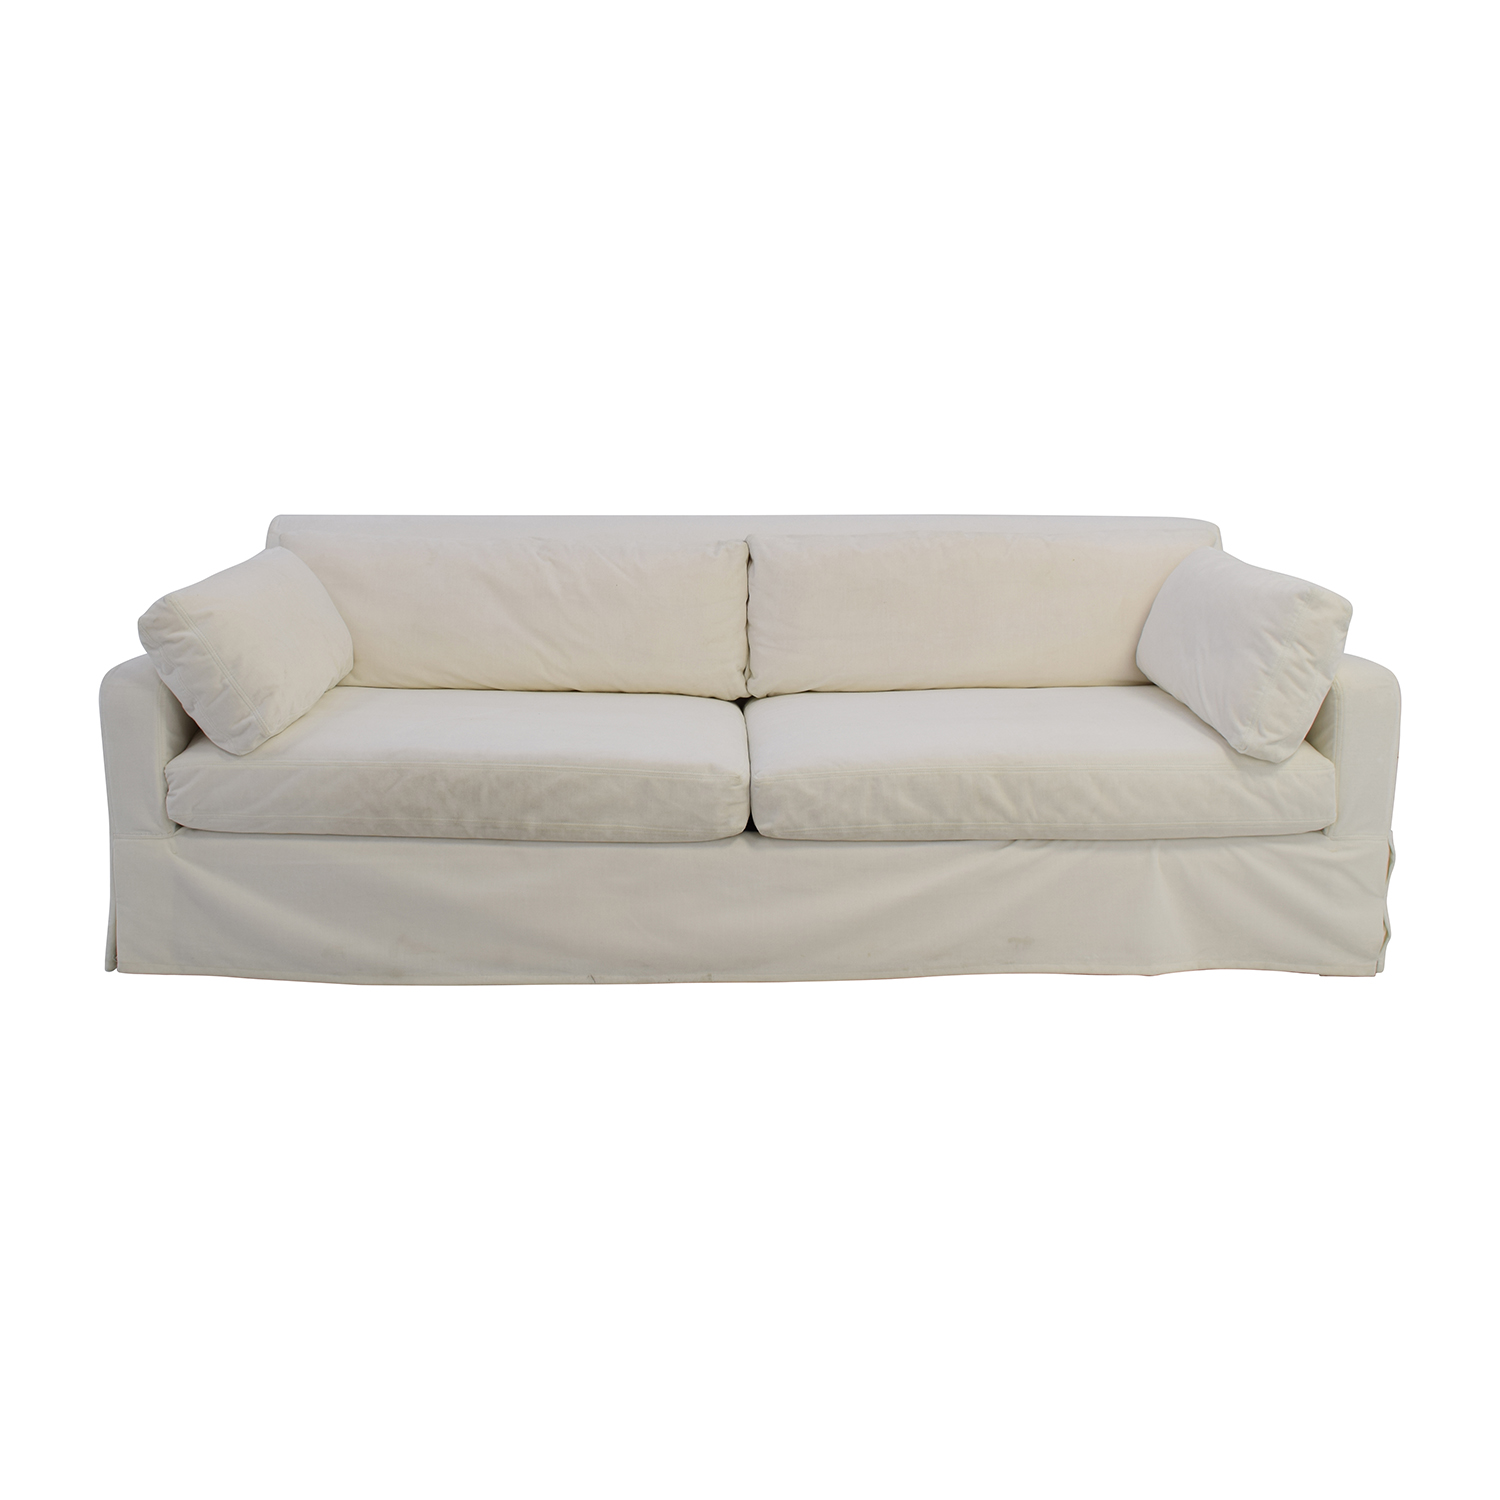 48% OFF Bernhardt Bernhardt Jefferson Brown Sofa Sofas